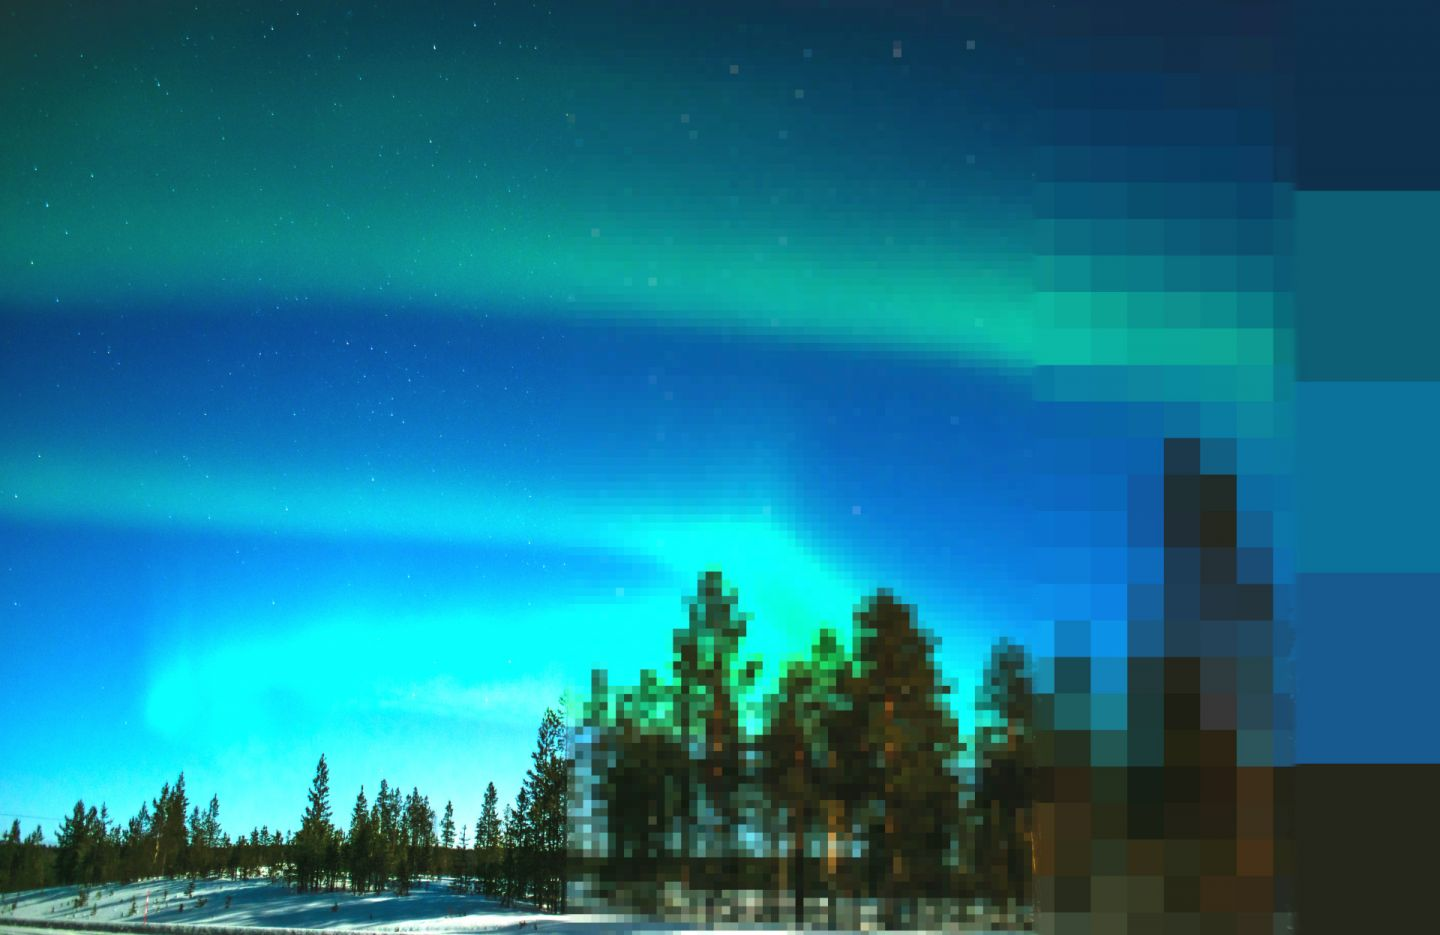 Compression artifacts in a Northern Lights photo from Finnish Lapland